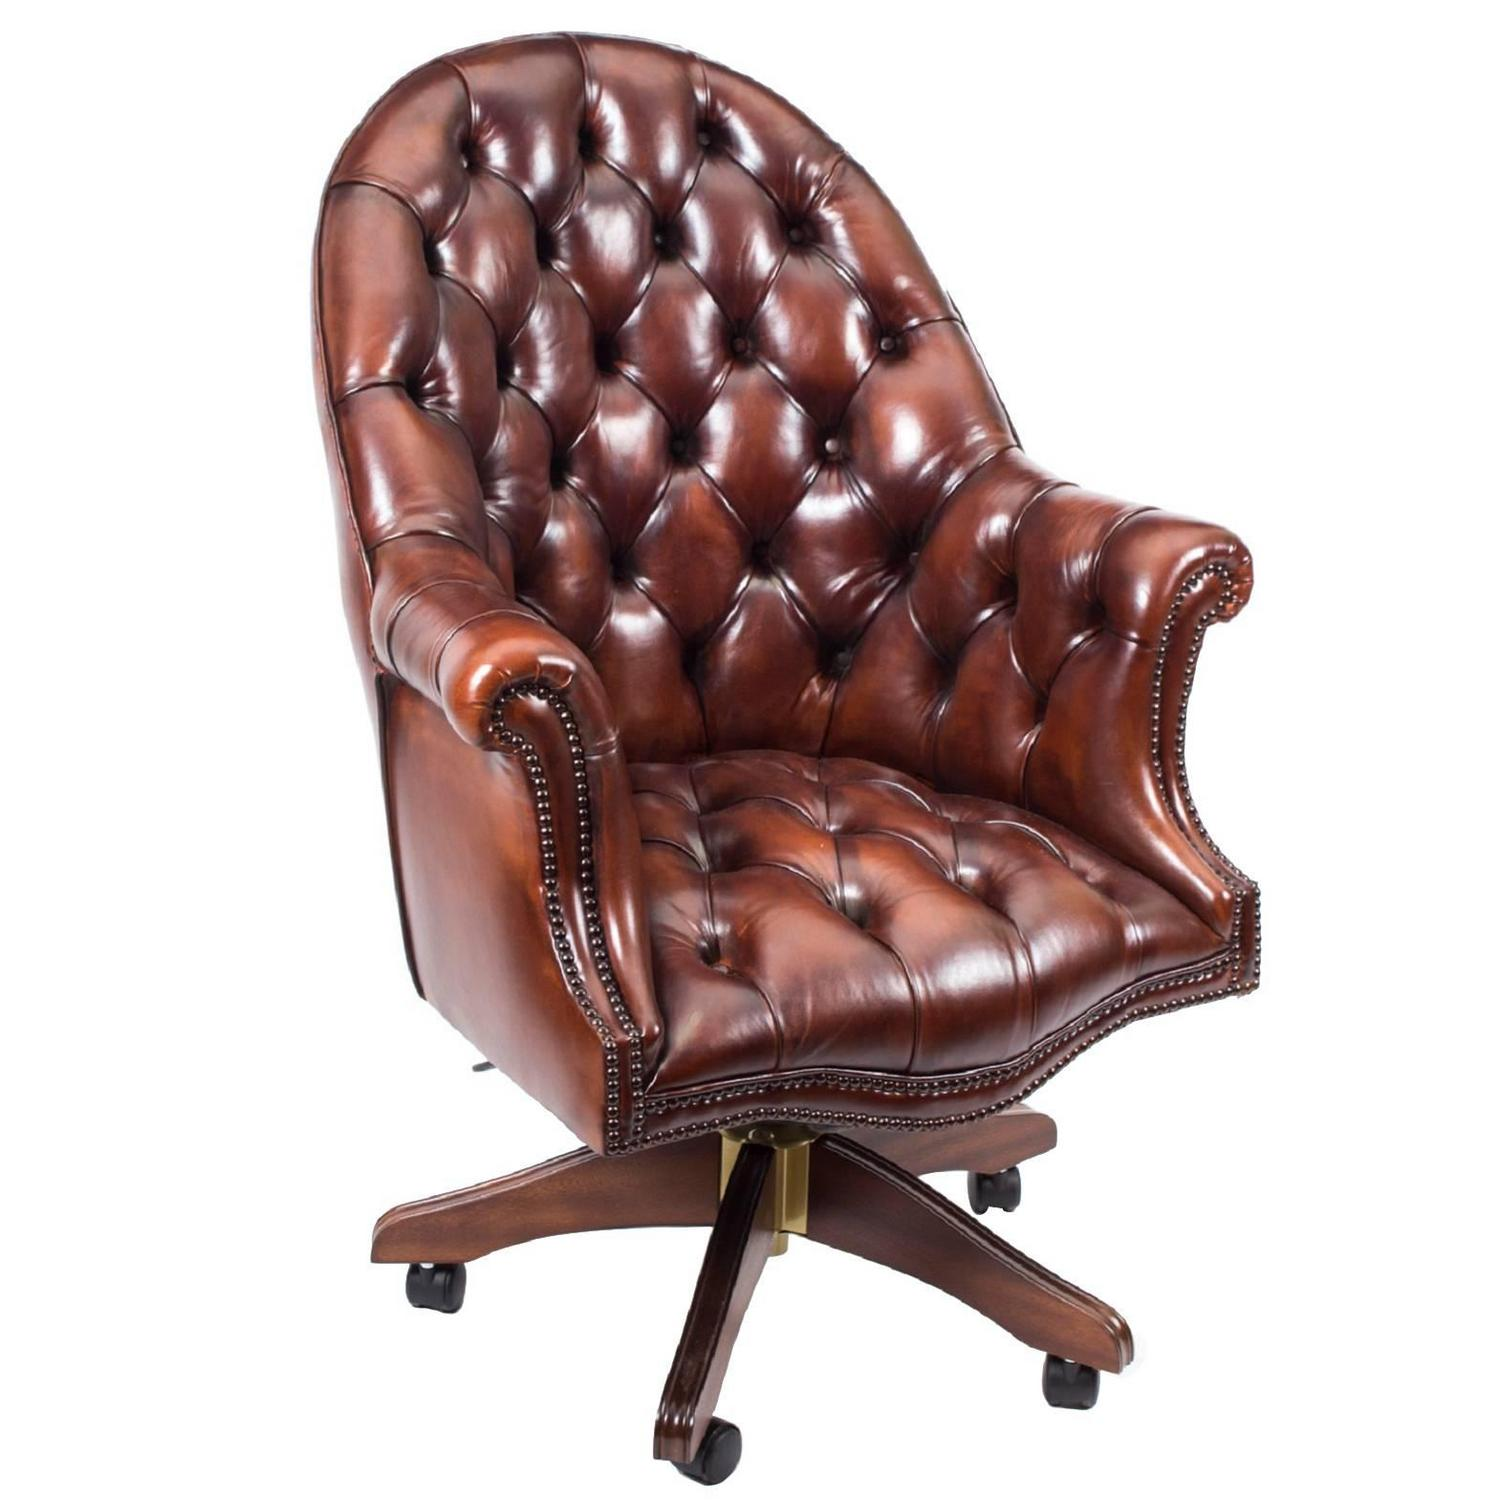 leather directors chair silver spandex covers english handmade desk bbo at 1stdibs